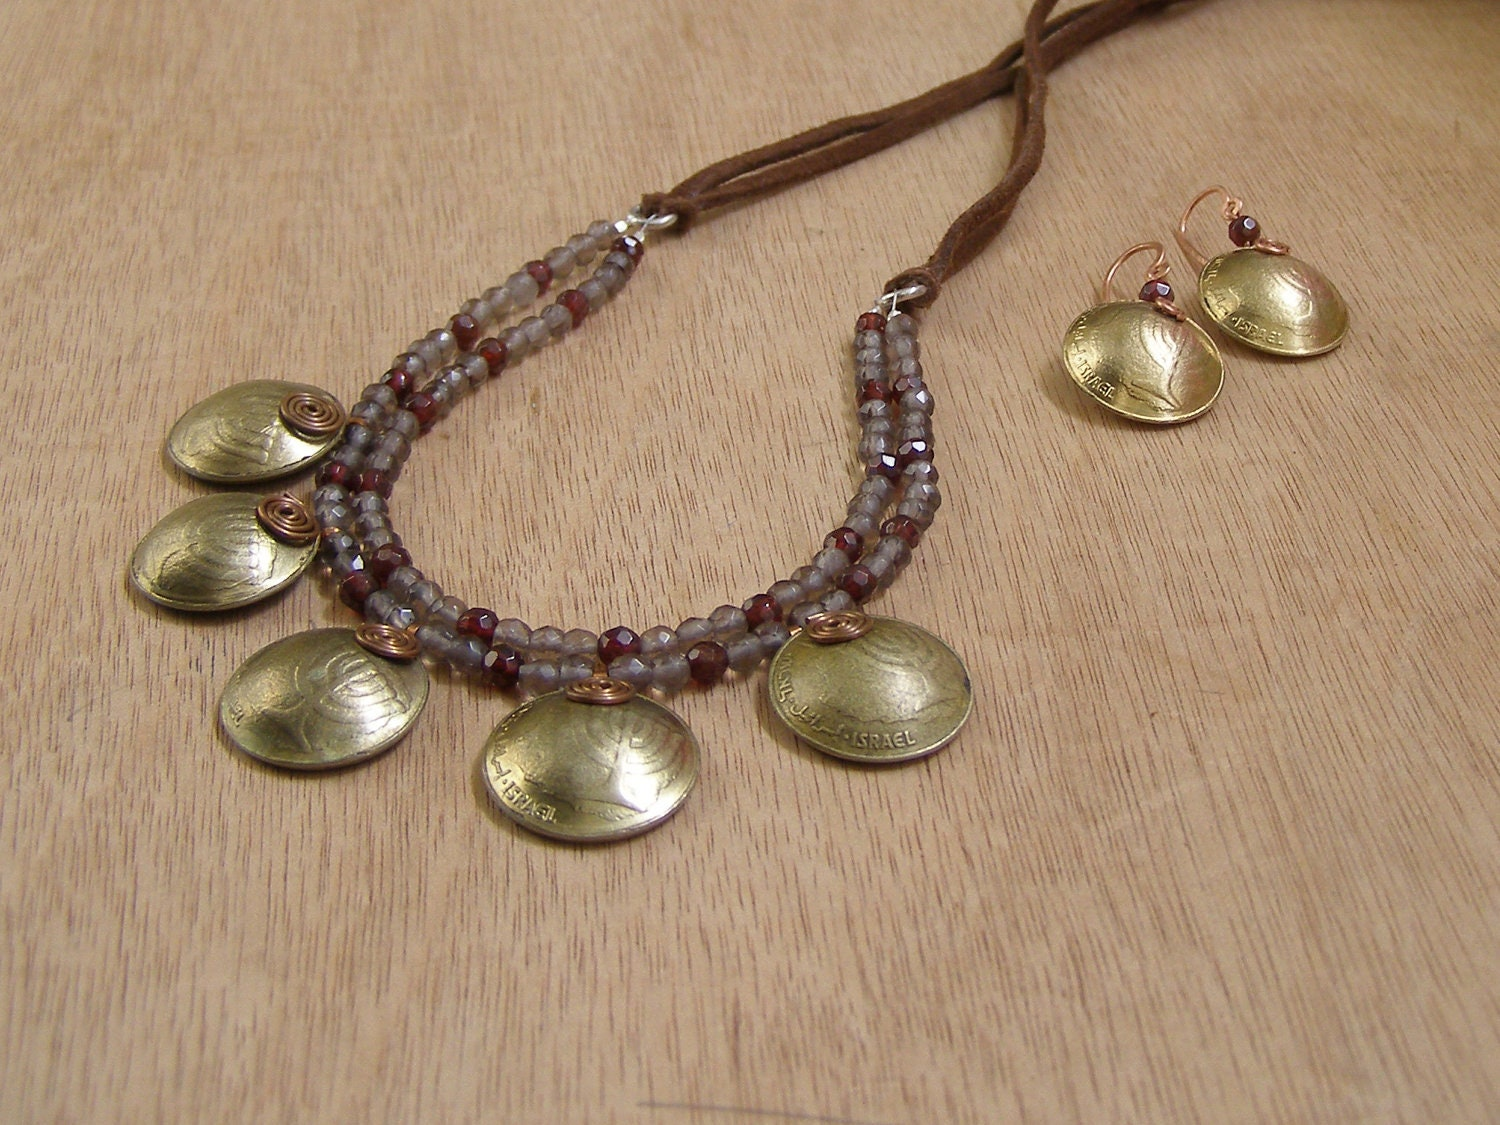 Set earrings coin necklace charm coin jewelry Grey smoky quartz necklace red wine garnet necklace statement necklace made in Israel